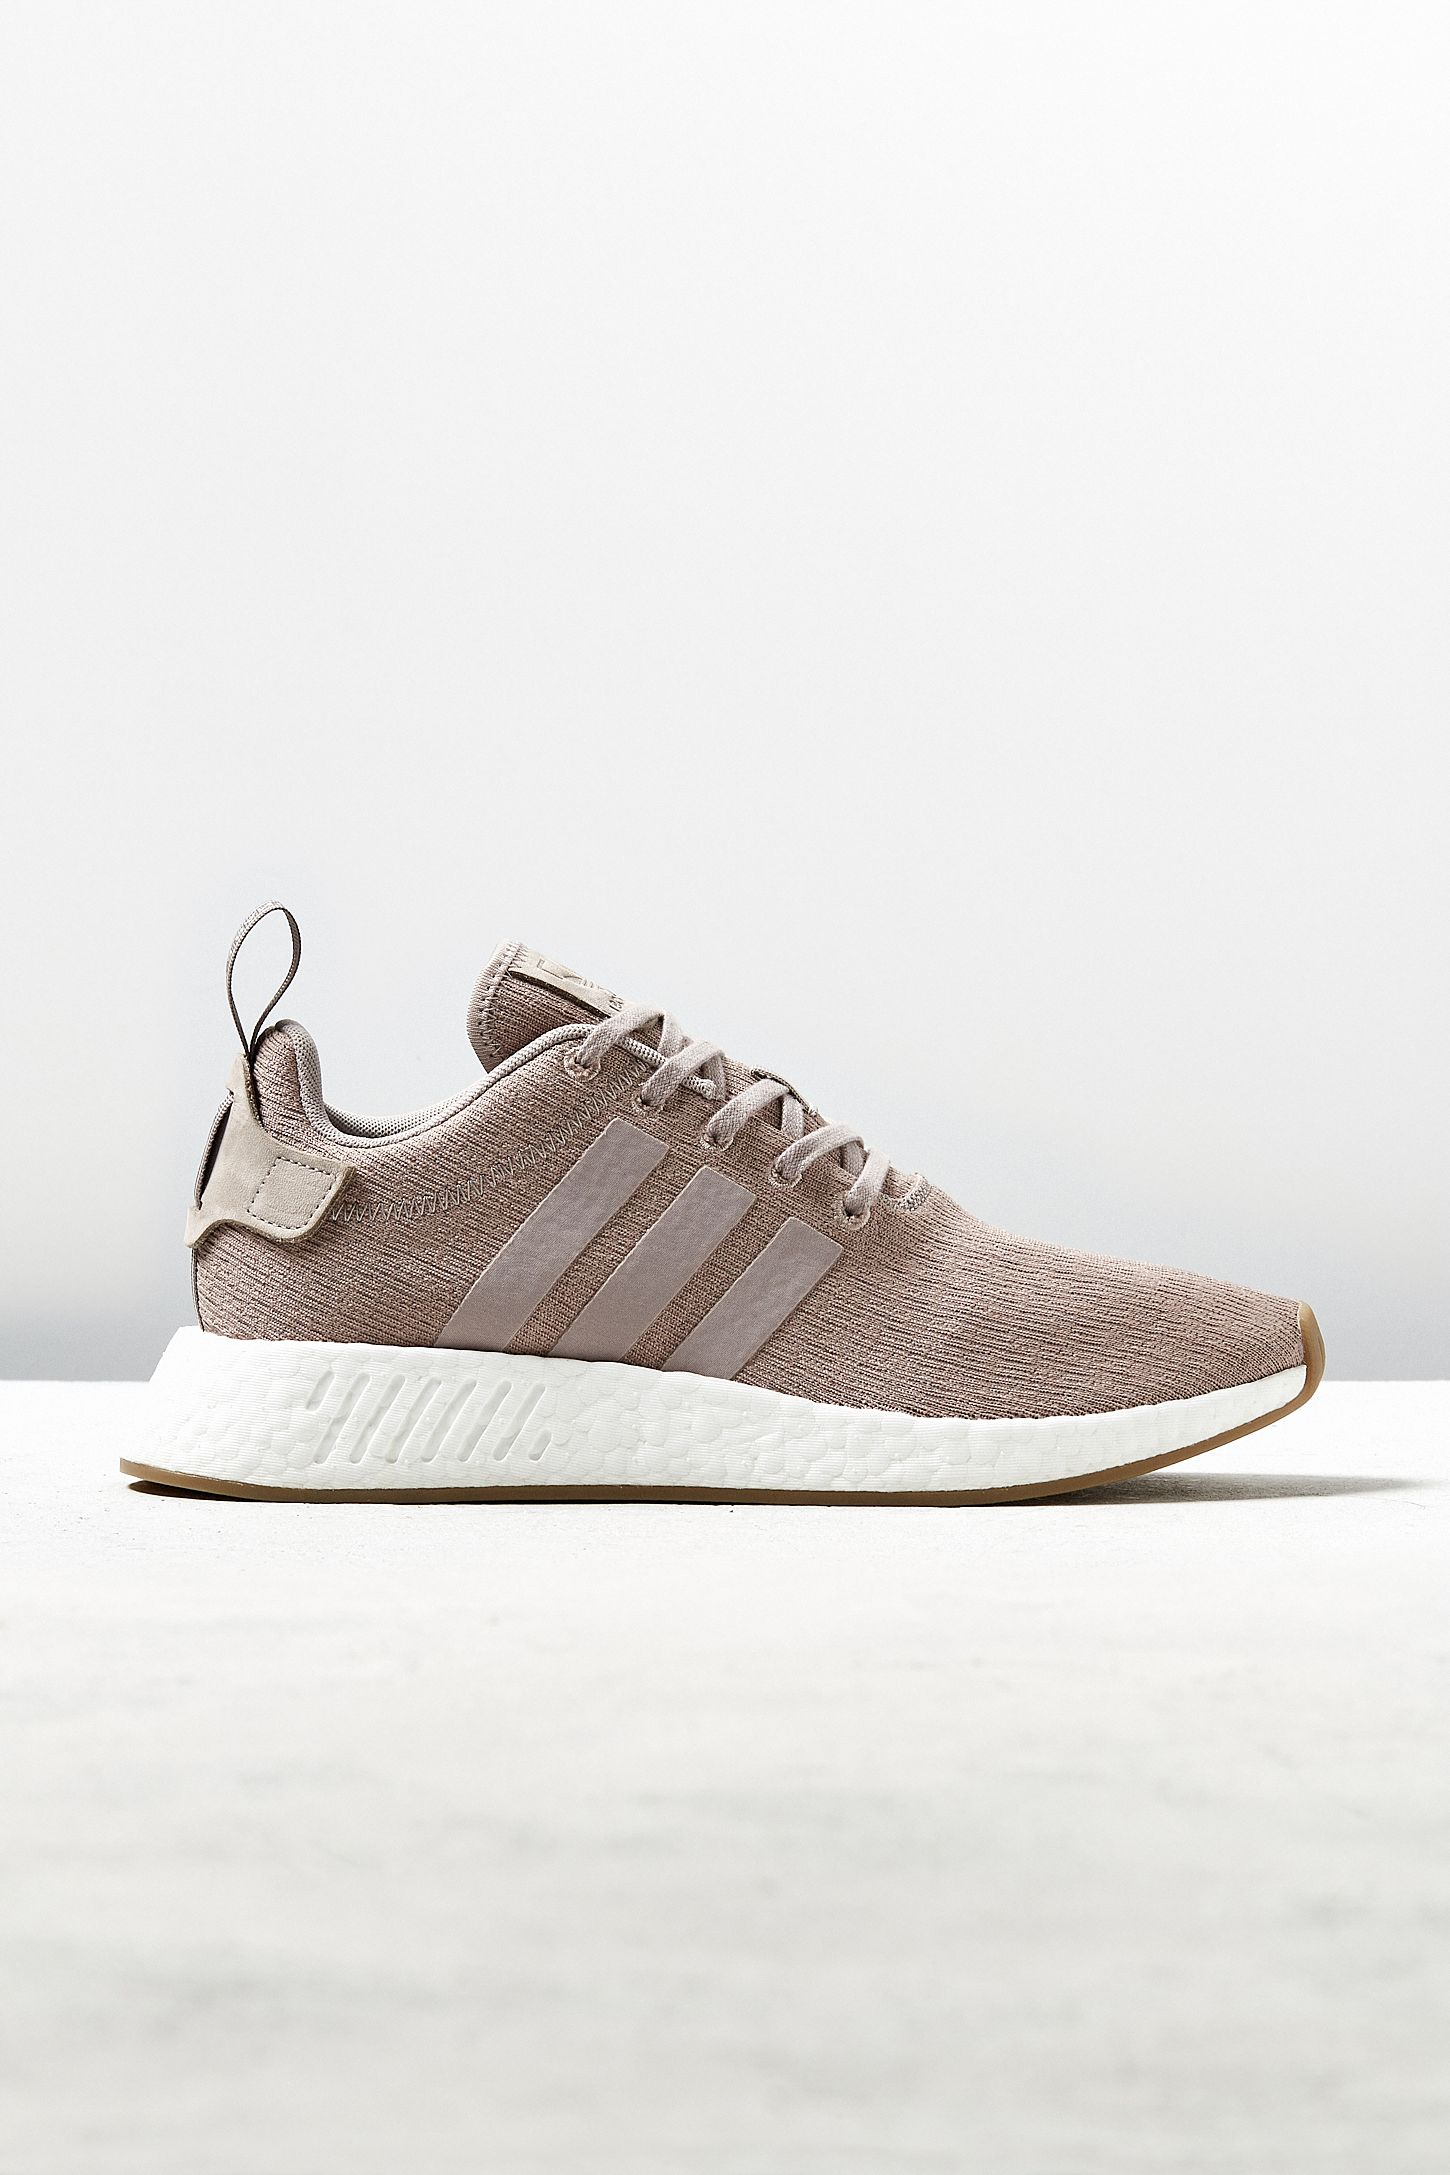 68c7550d3 adidas NMD R2 Sneaker